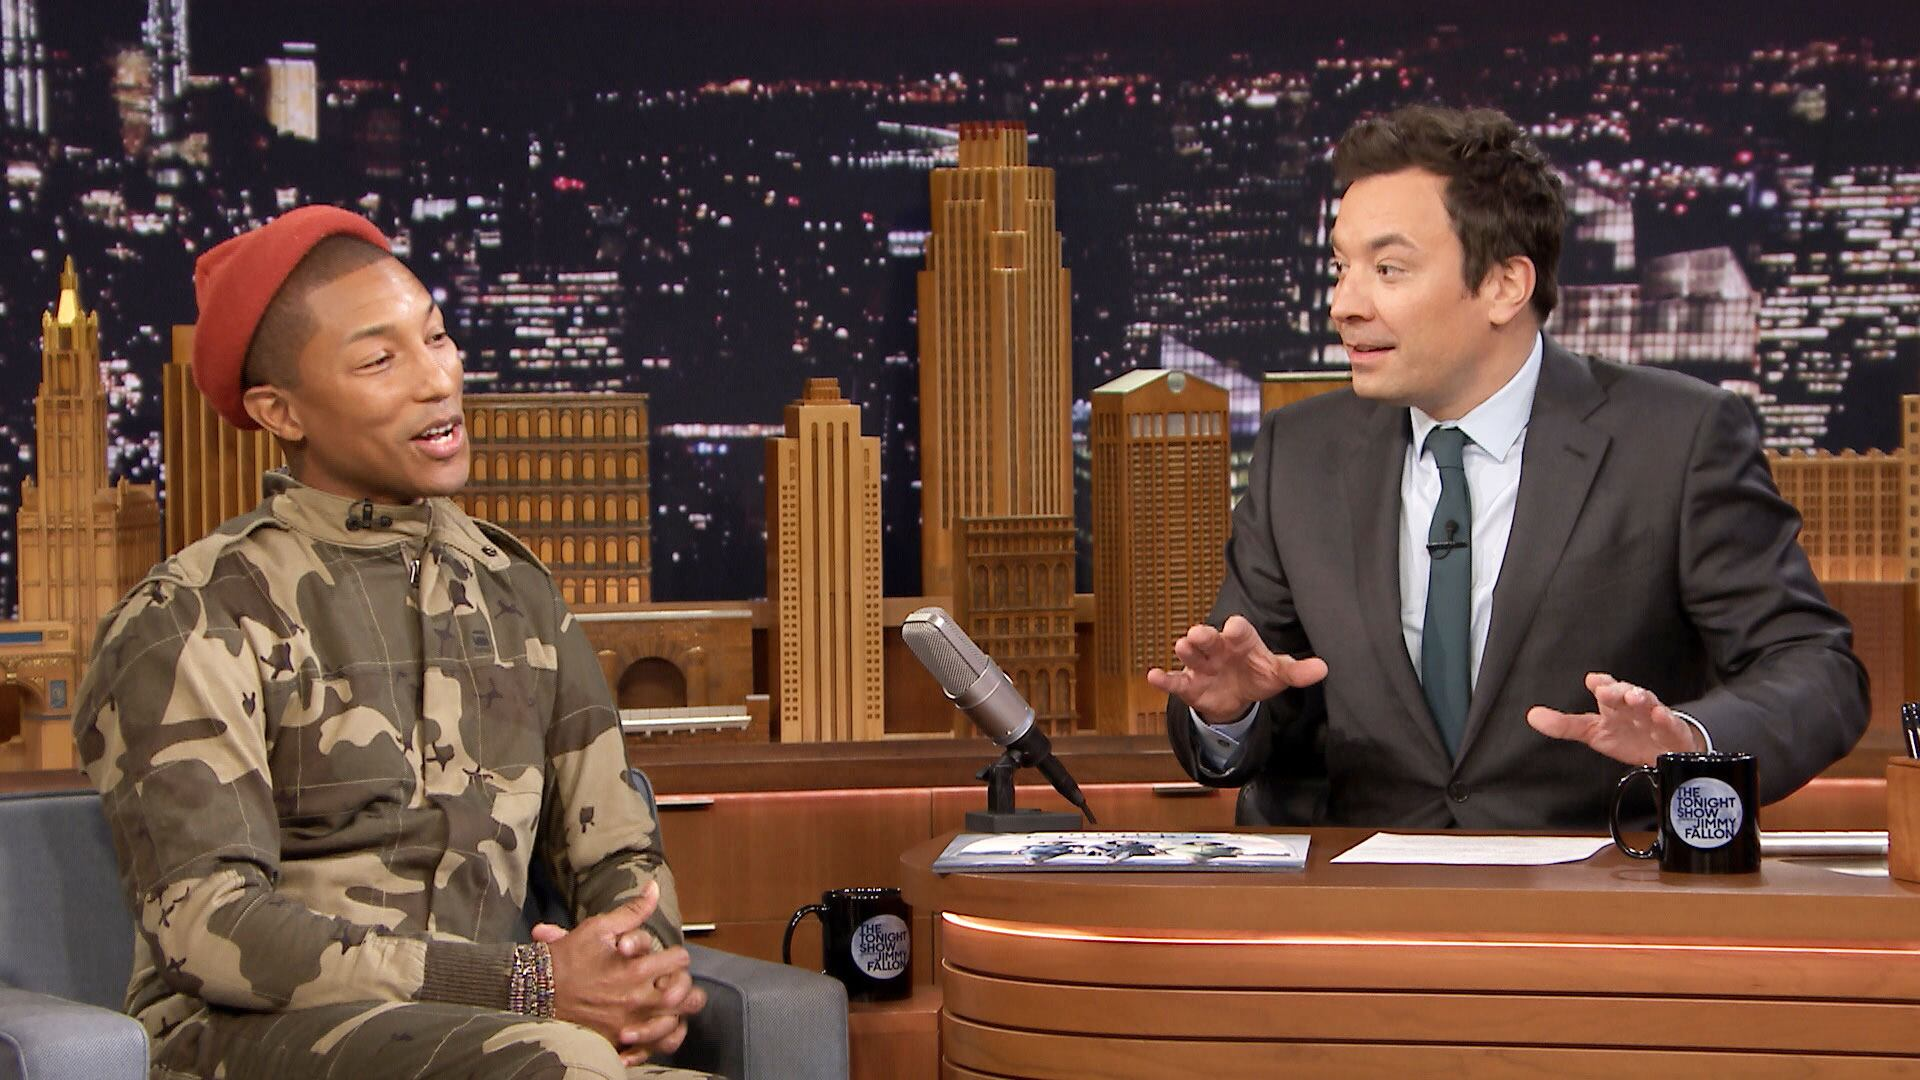 Pharrell Williams Helped Book a Music Guest on The Tonight Show